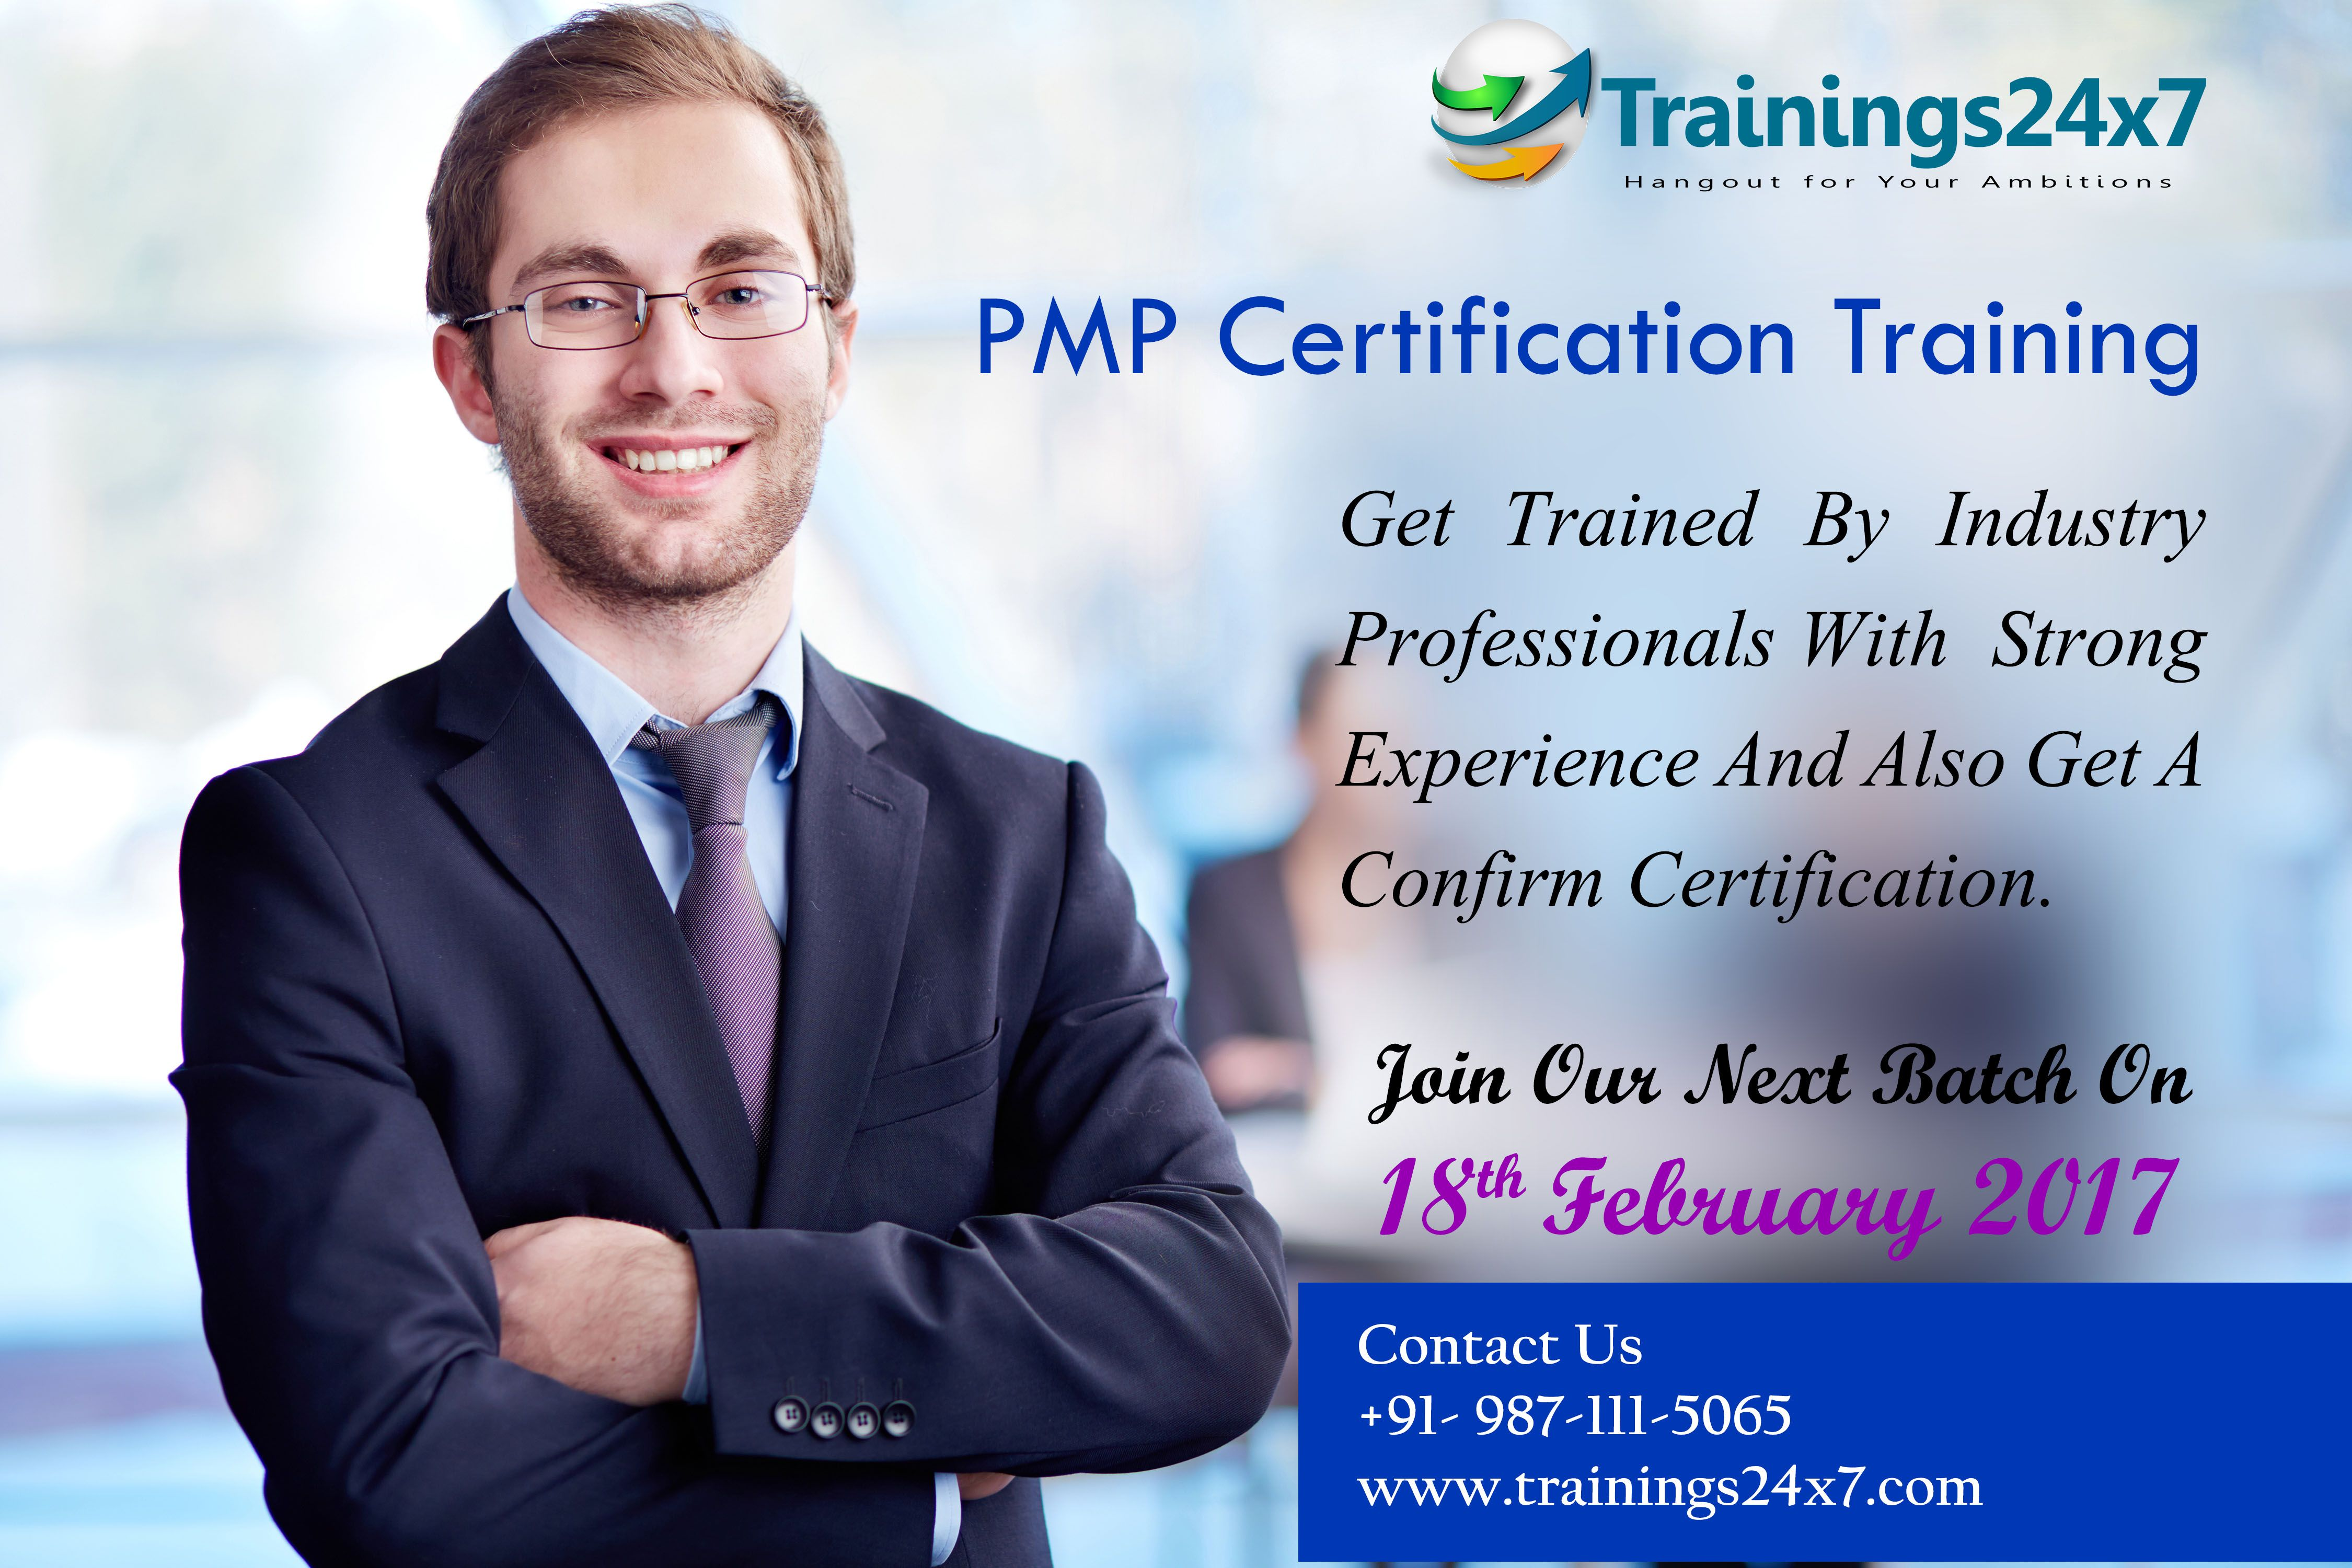 Pmpcertification Training With 100 Pass Rate 4 Simulation Test 35